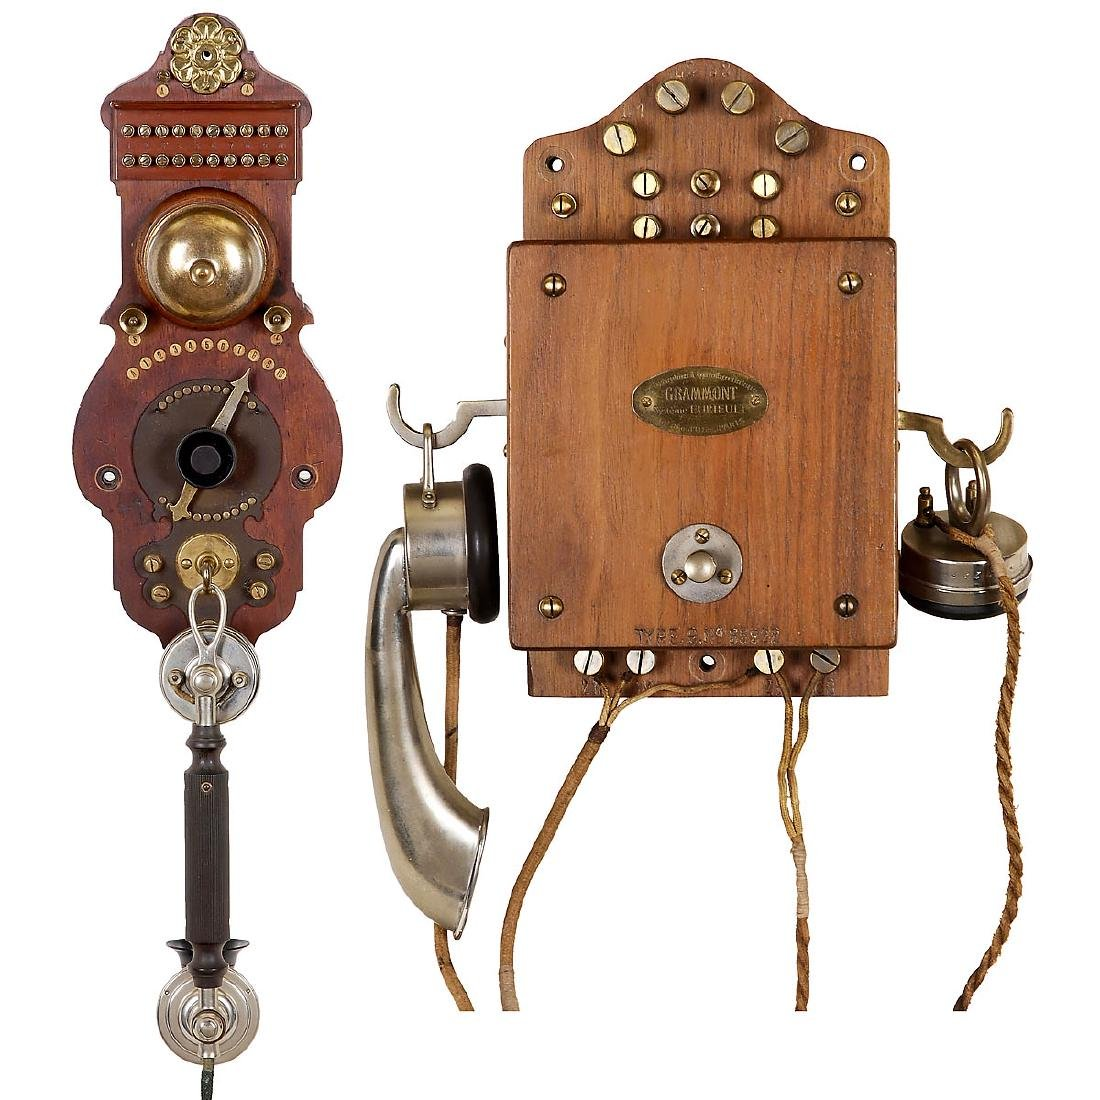 2 Early Wall Telephones, c. 1900-1920